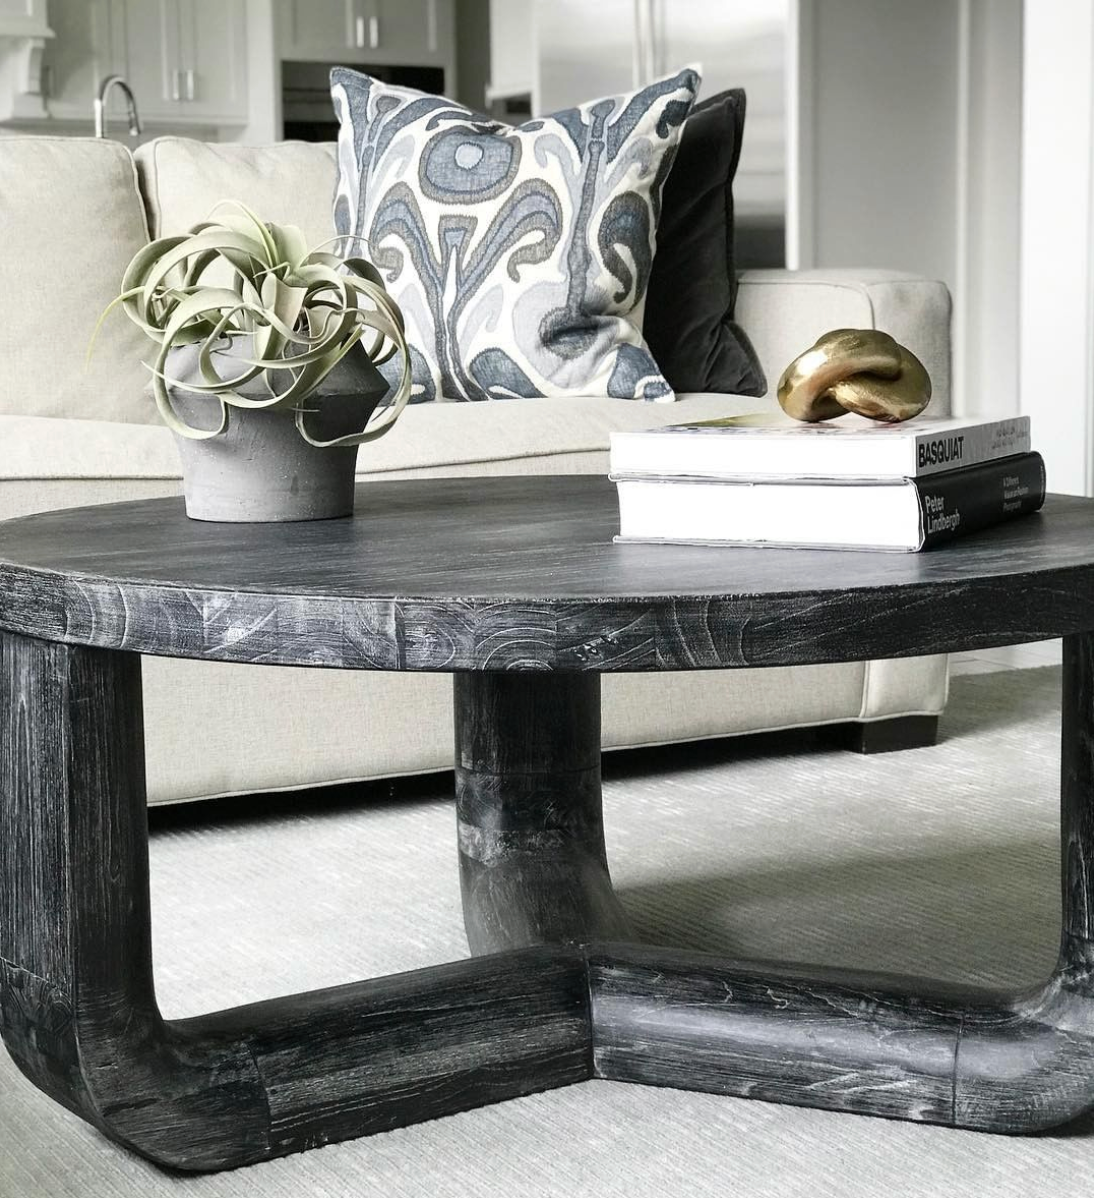 Bent Coffee Table by Noir Coffee table design, Furniture